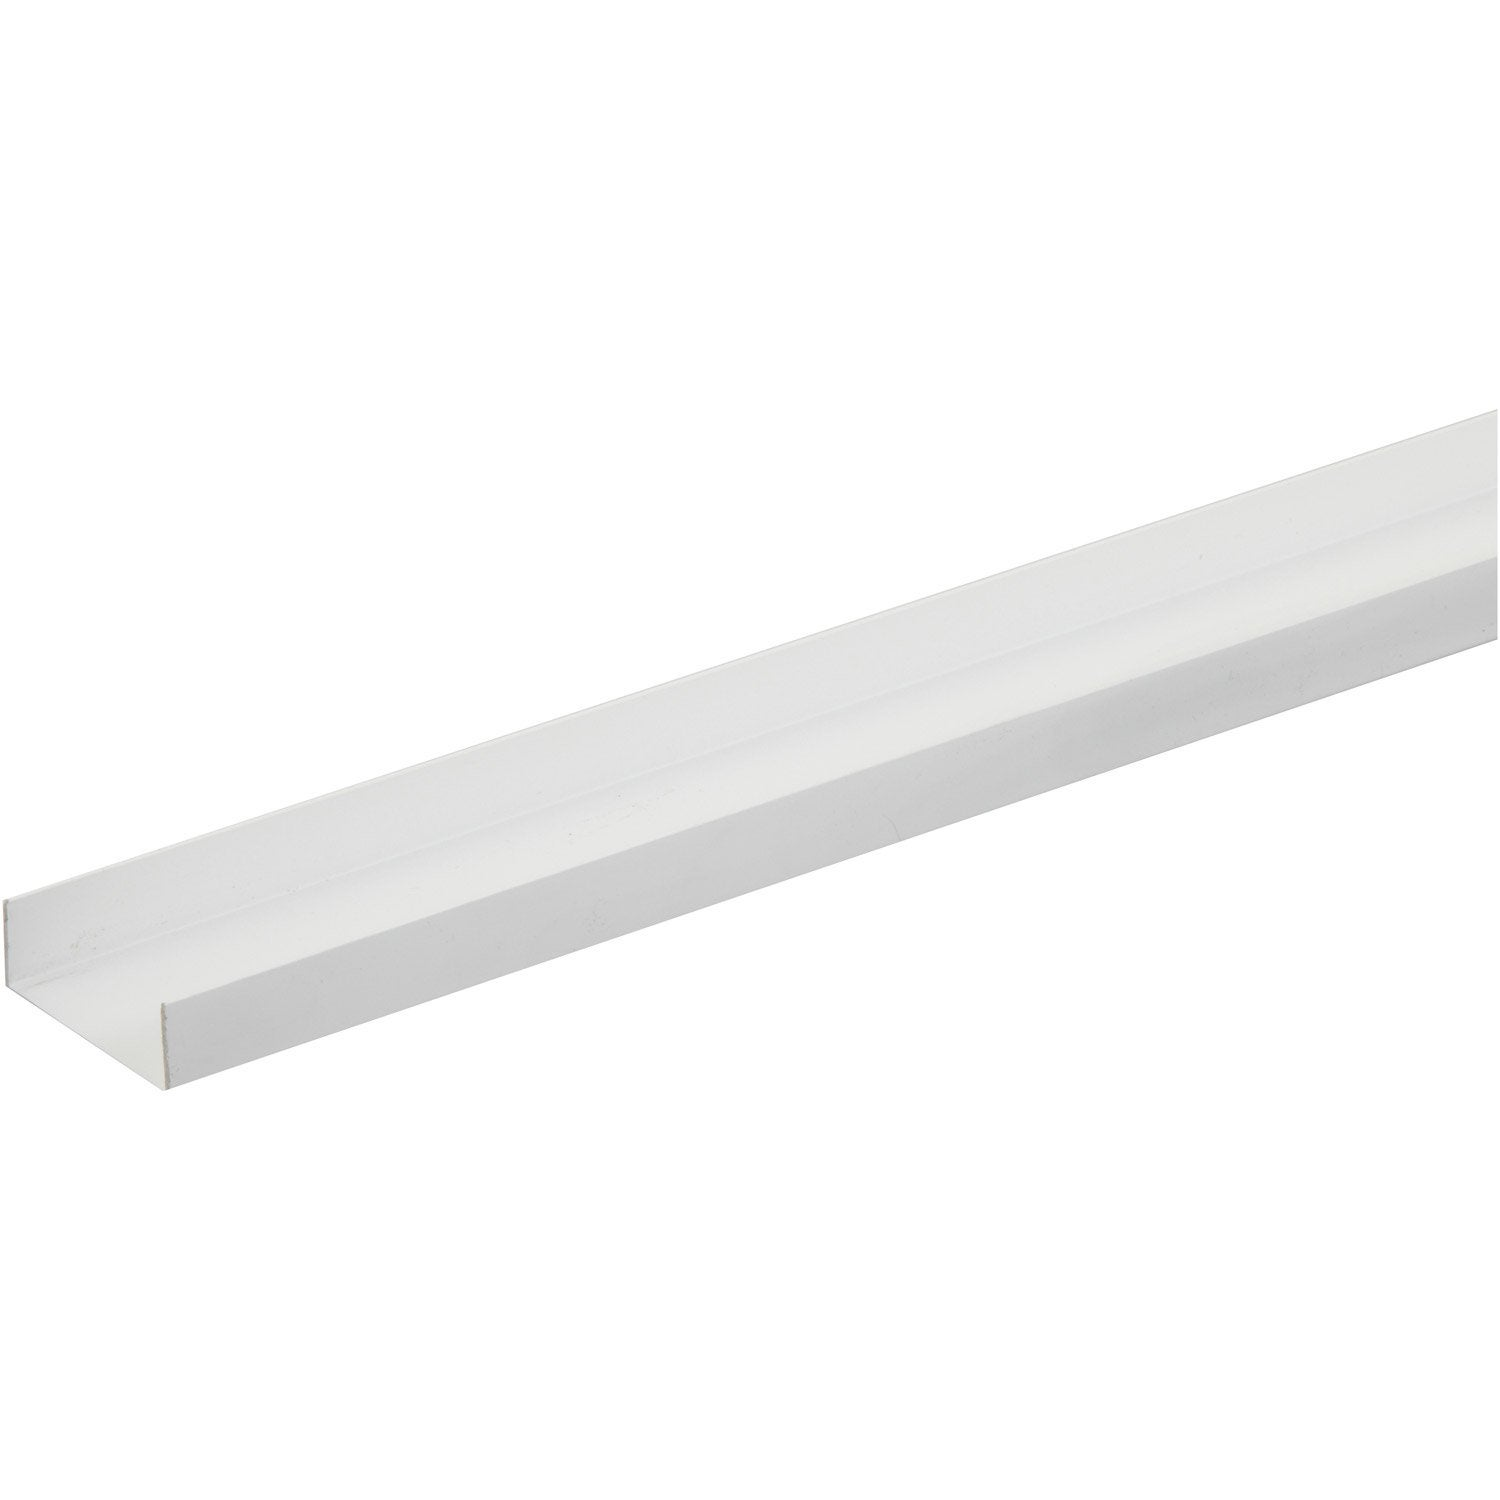 Nez de cloison profil en pvc long 250cm section 54x1mm leroy merlin - Cloison alveolaire leroy merlin ...